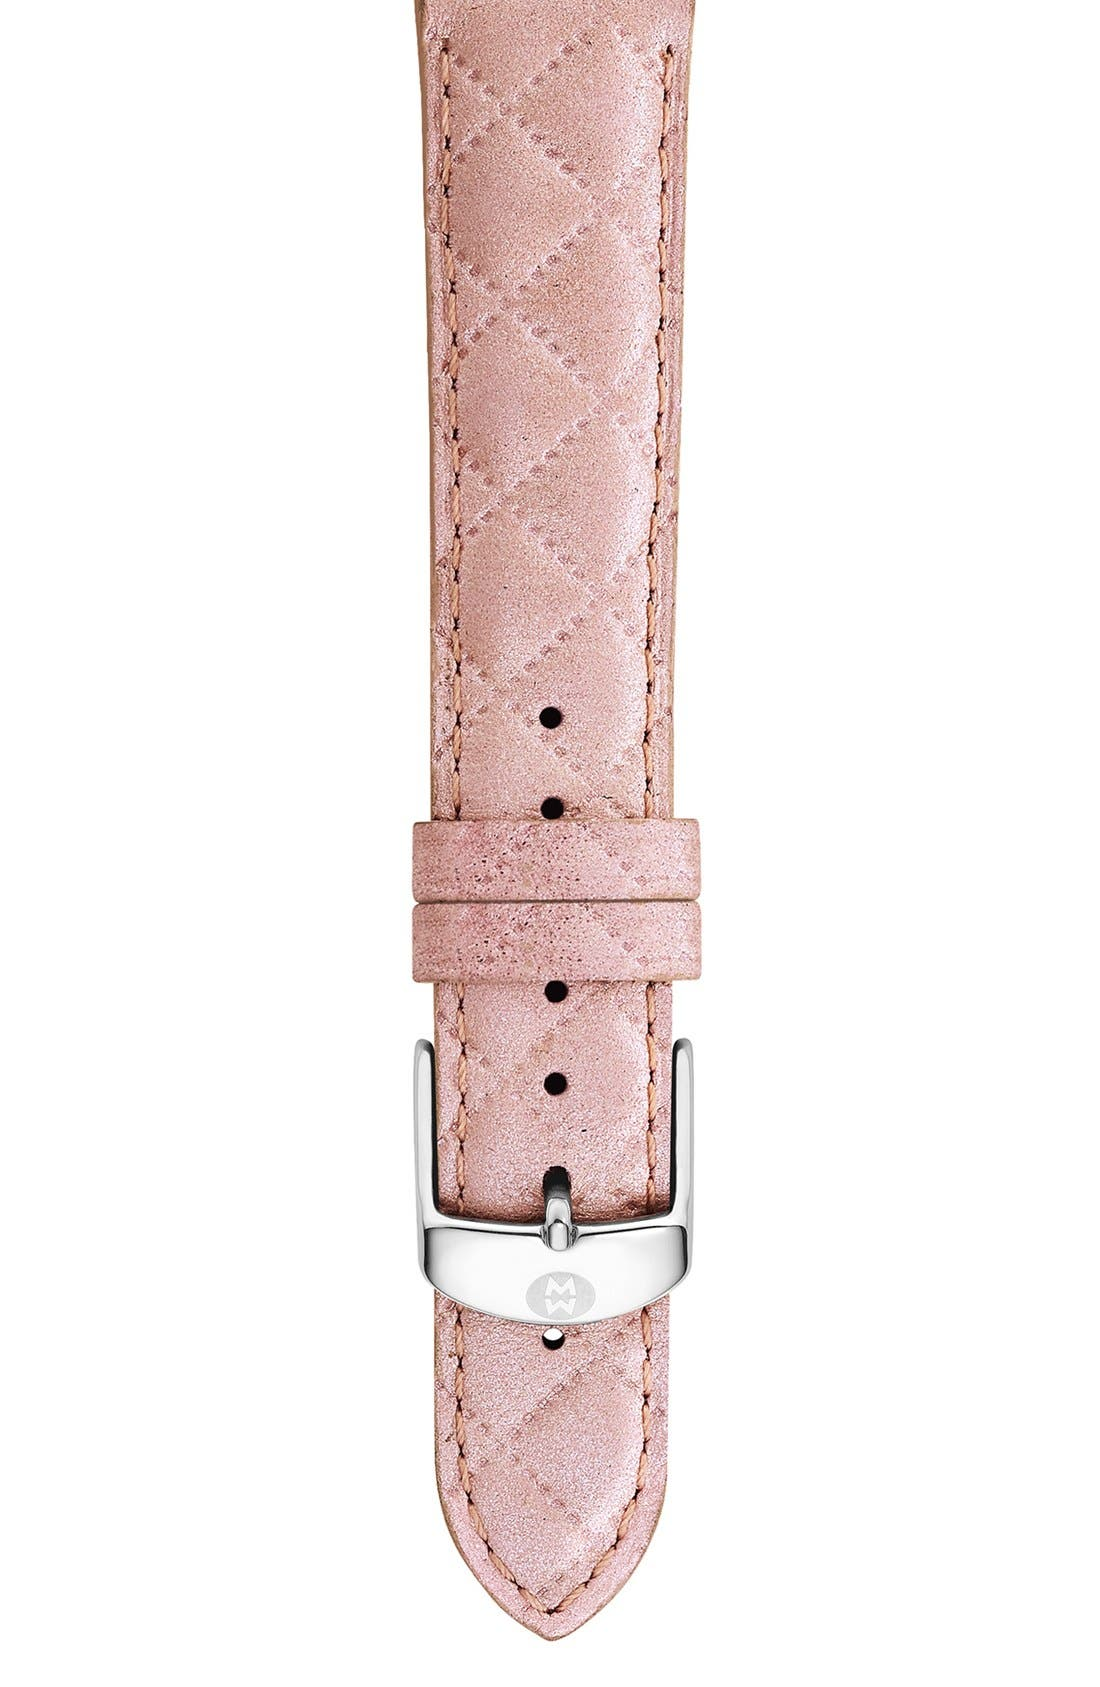 18mm Quilted Leather Watch Strap,                         Main,                         color, Pearl Pink